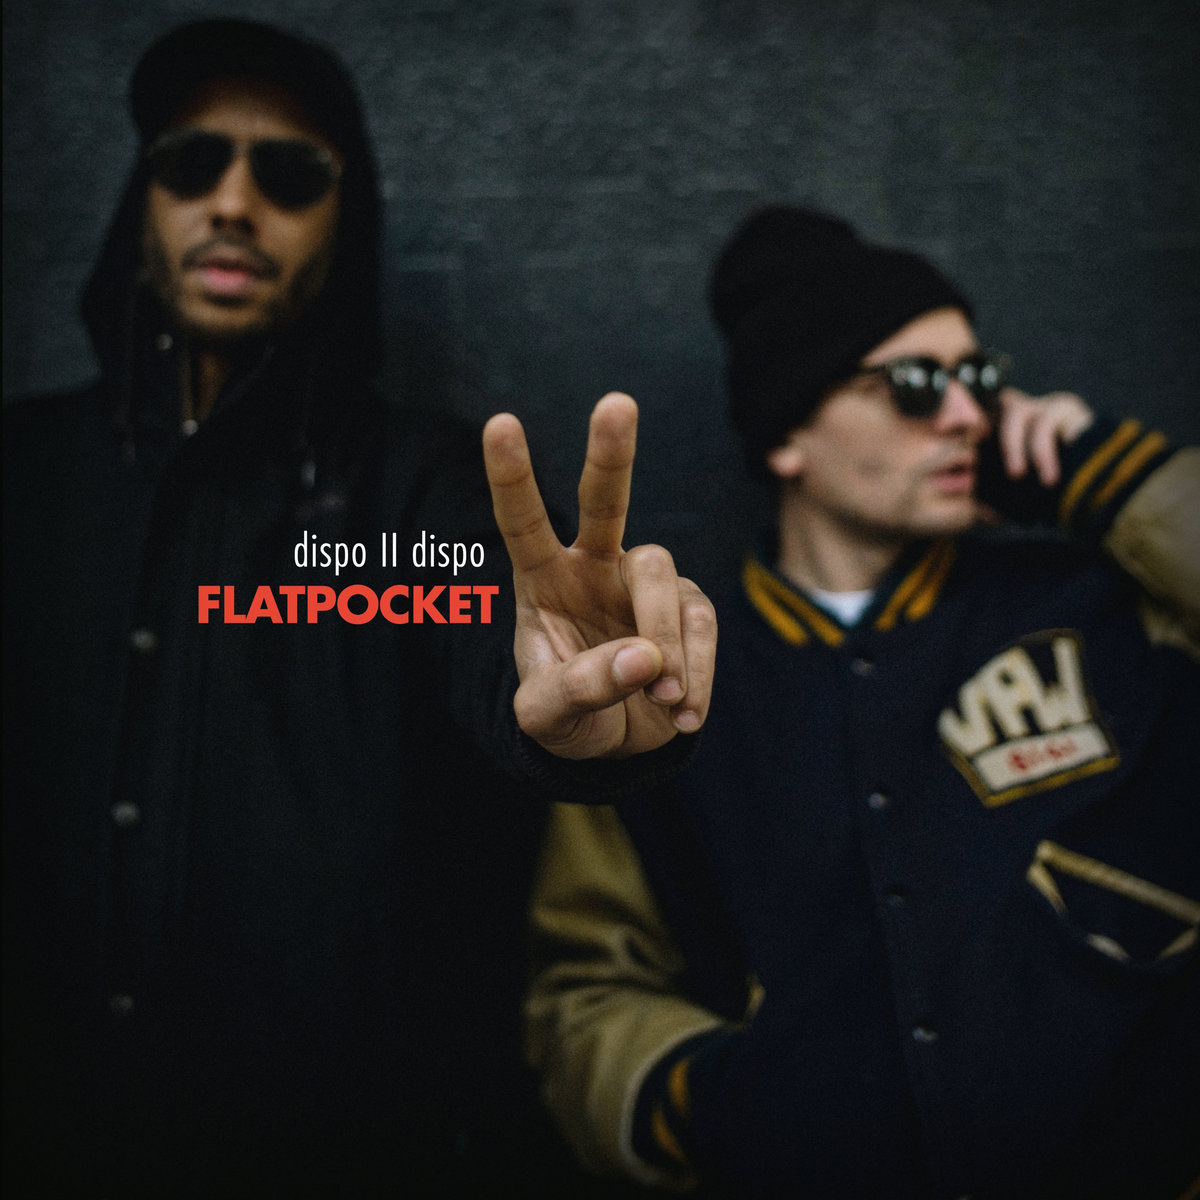 Listen: Flatpocket (Twit One & Lazy Jones) – Dispo II Dispo LP